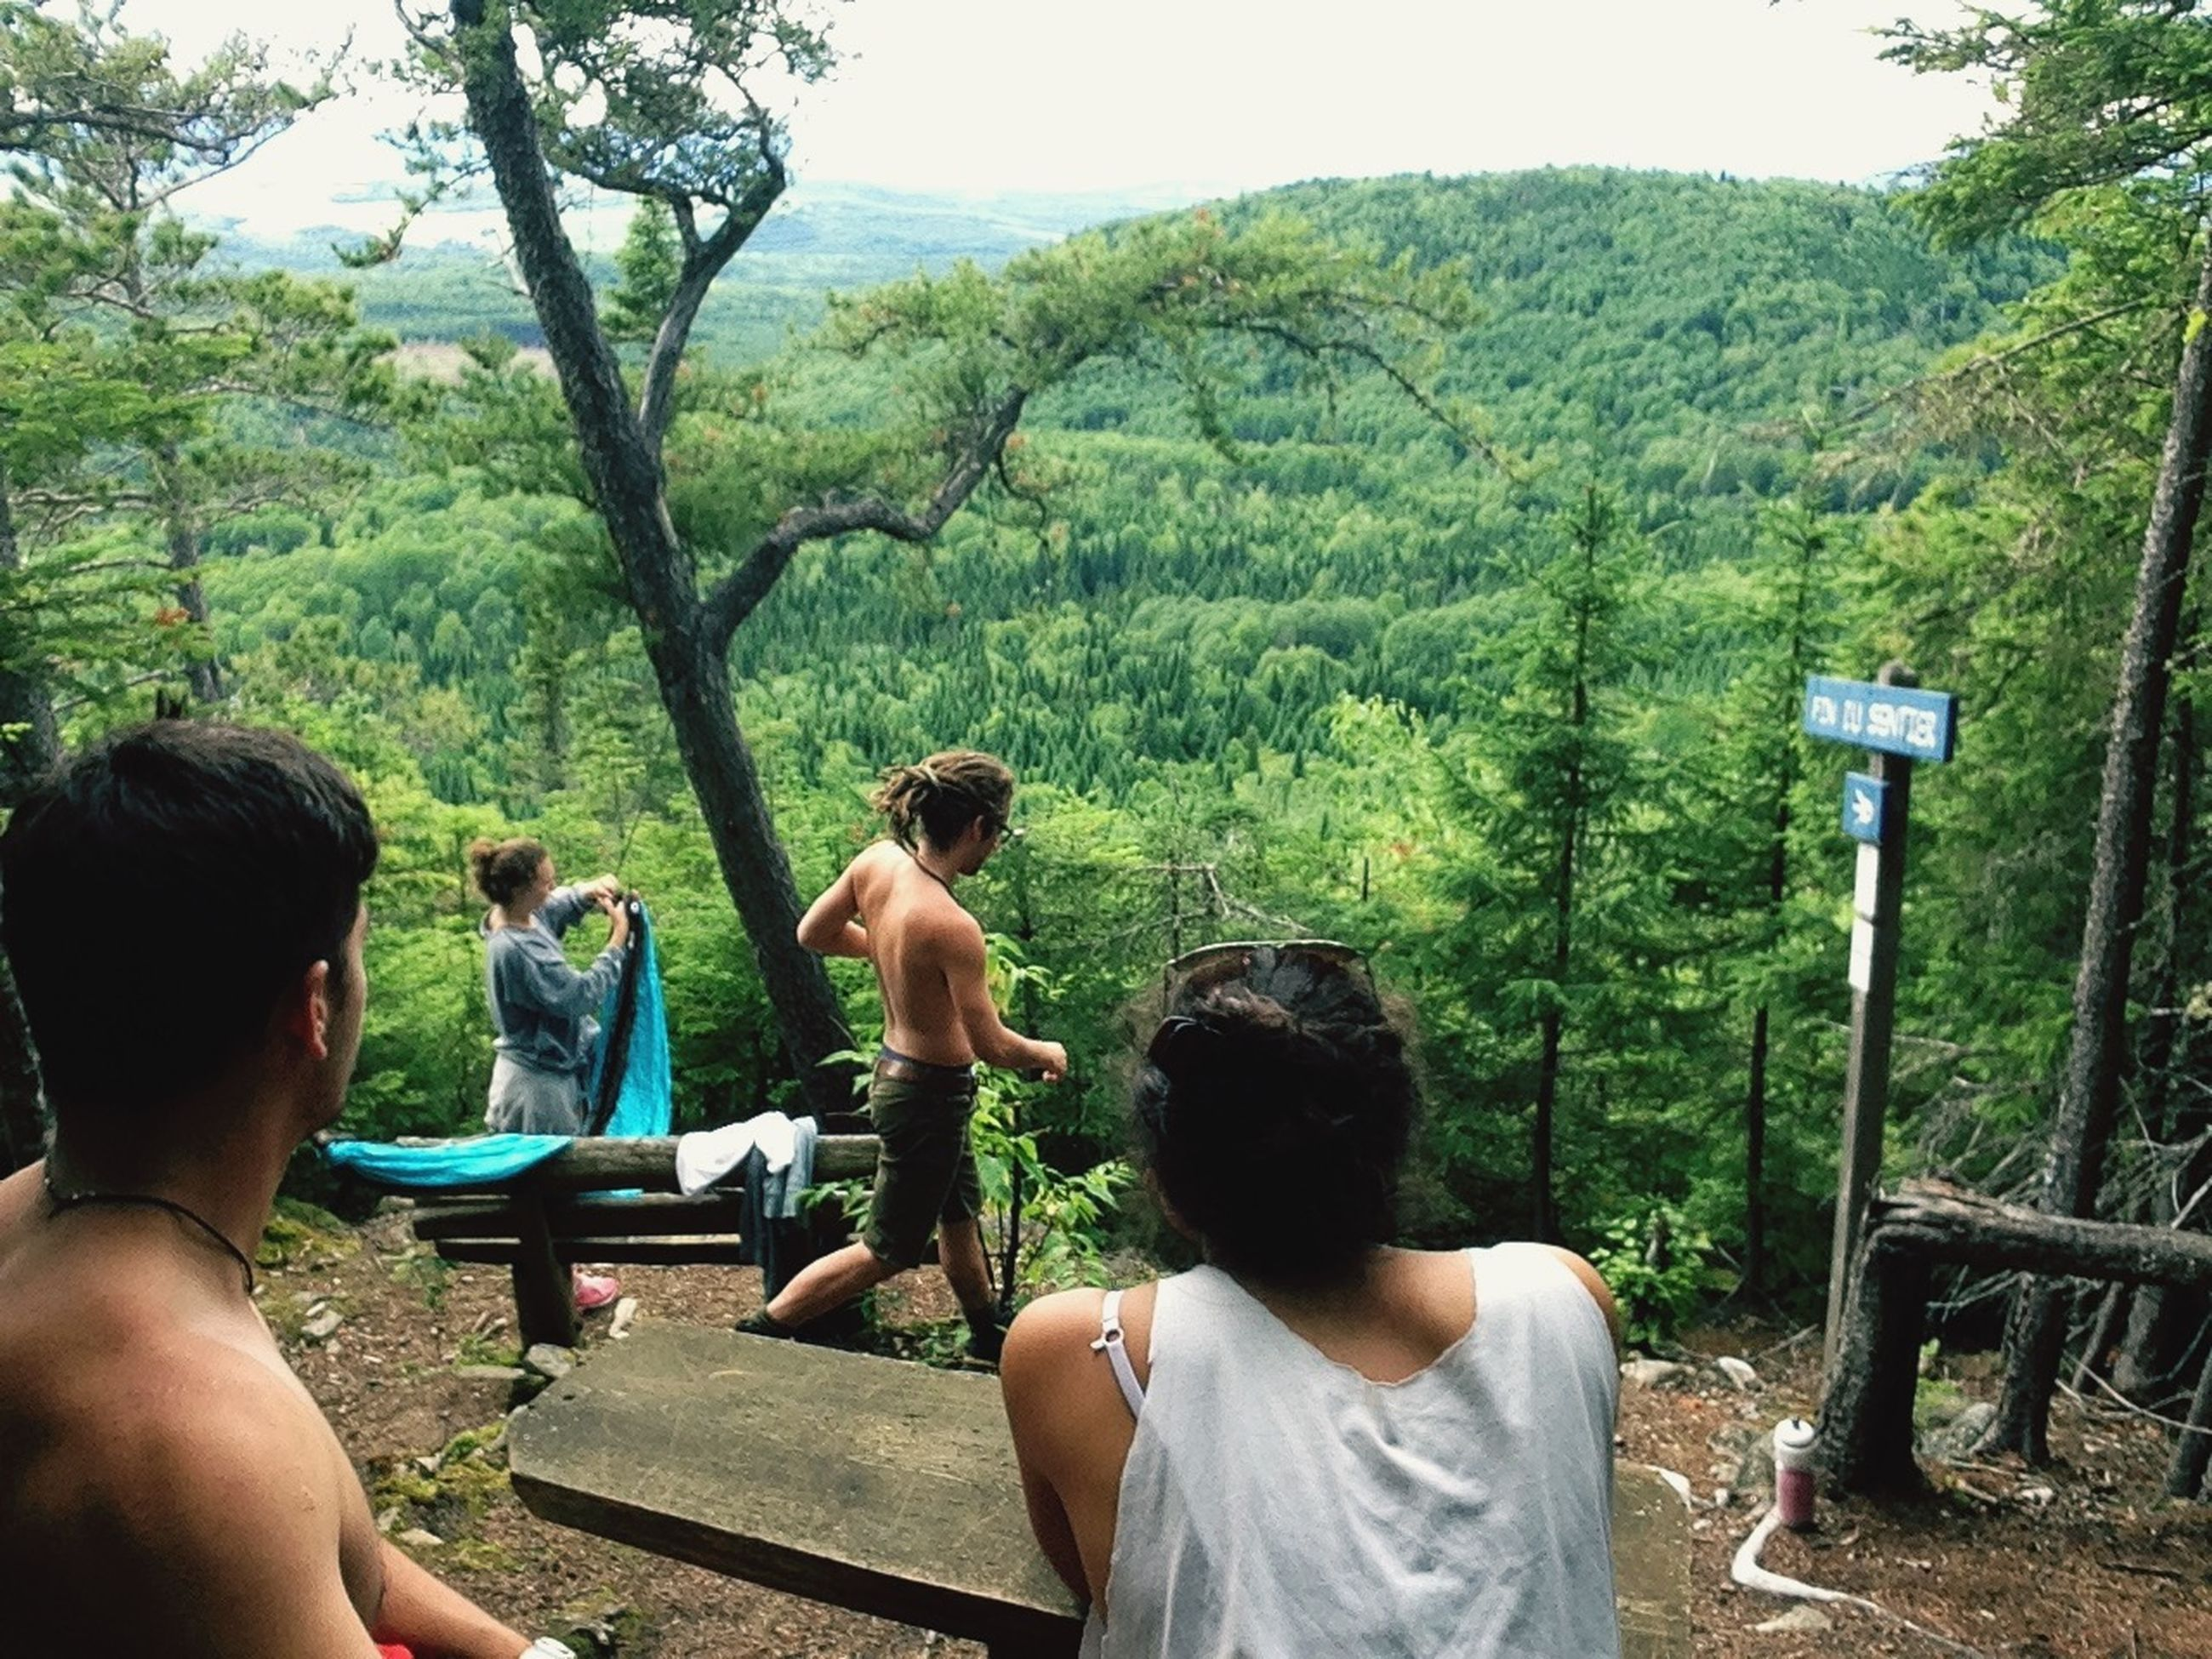 tree, lifestyles, leisure activity, men, person, rear view, sitting, mountain, relaxation, casual clothing, nature, growth, tranquility, green color, day, beauty in nature, tranquil scene